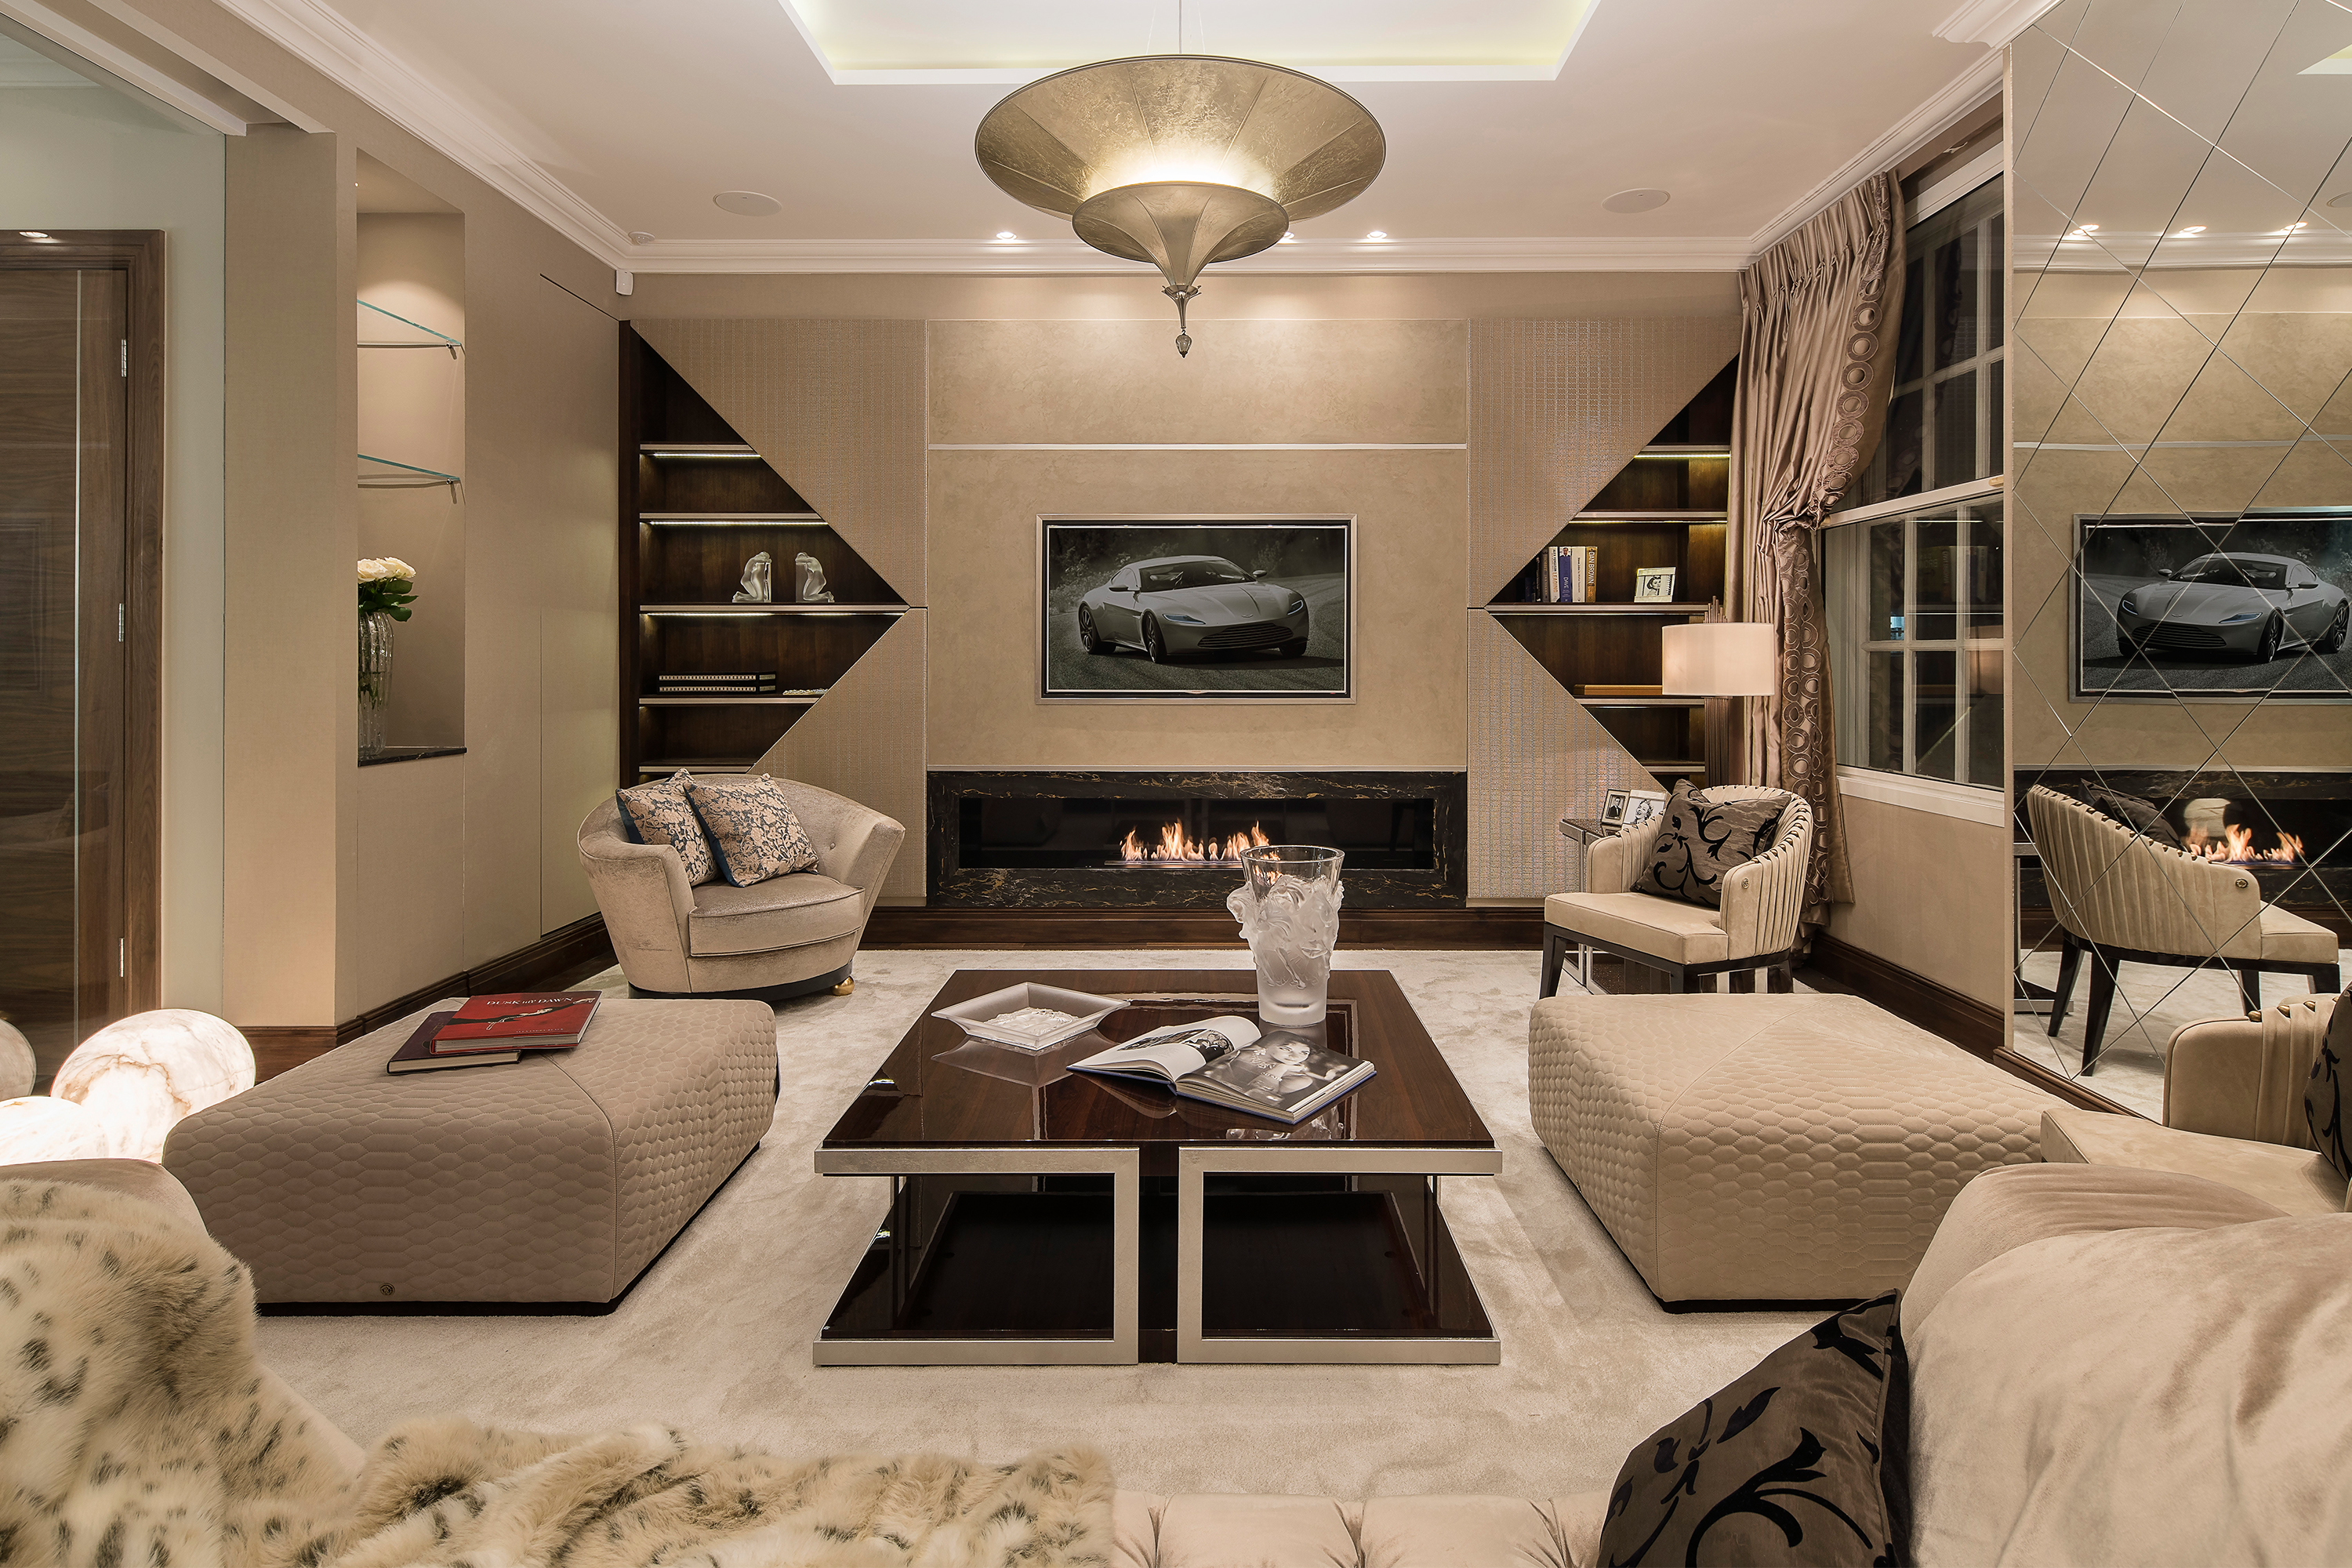 Luxury interior design scheme for high-end Mayfair apartment